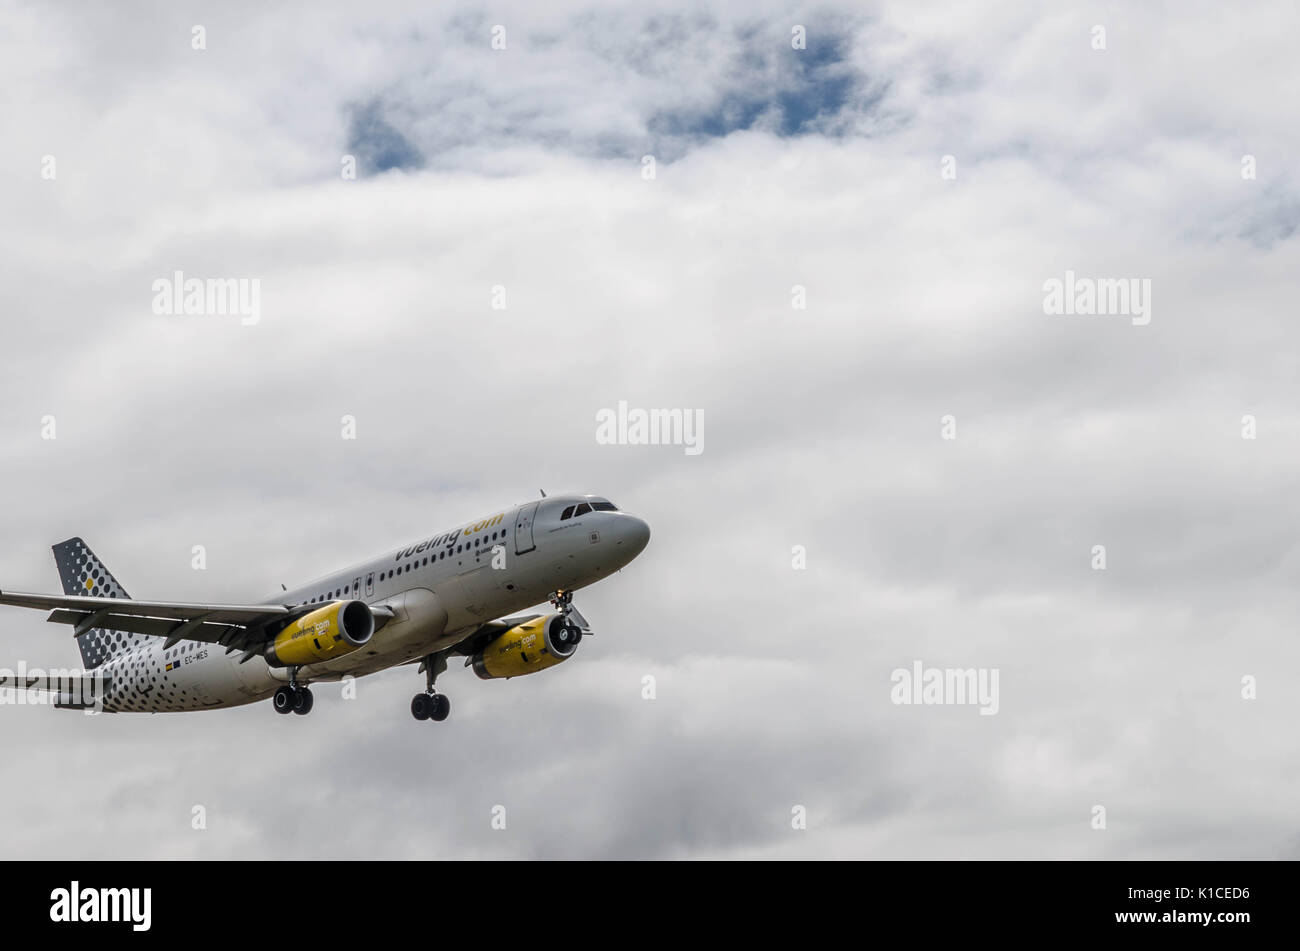 A Vueling Airbus A320 landing at Cardiff Airport, Wales, UK. - Stock Image